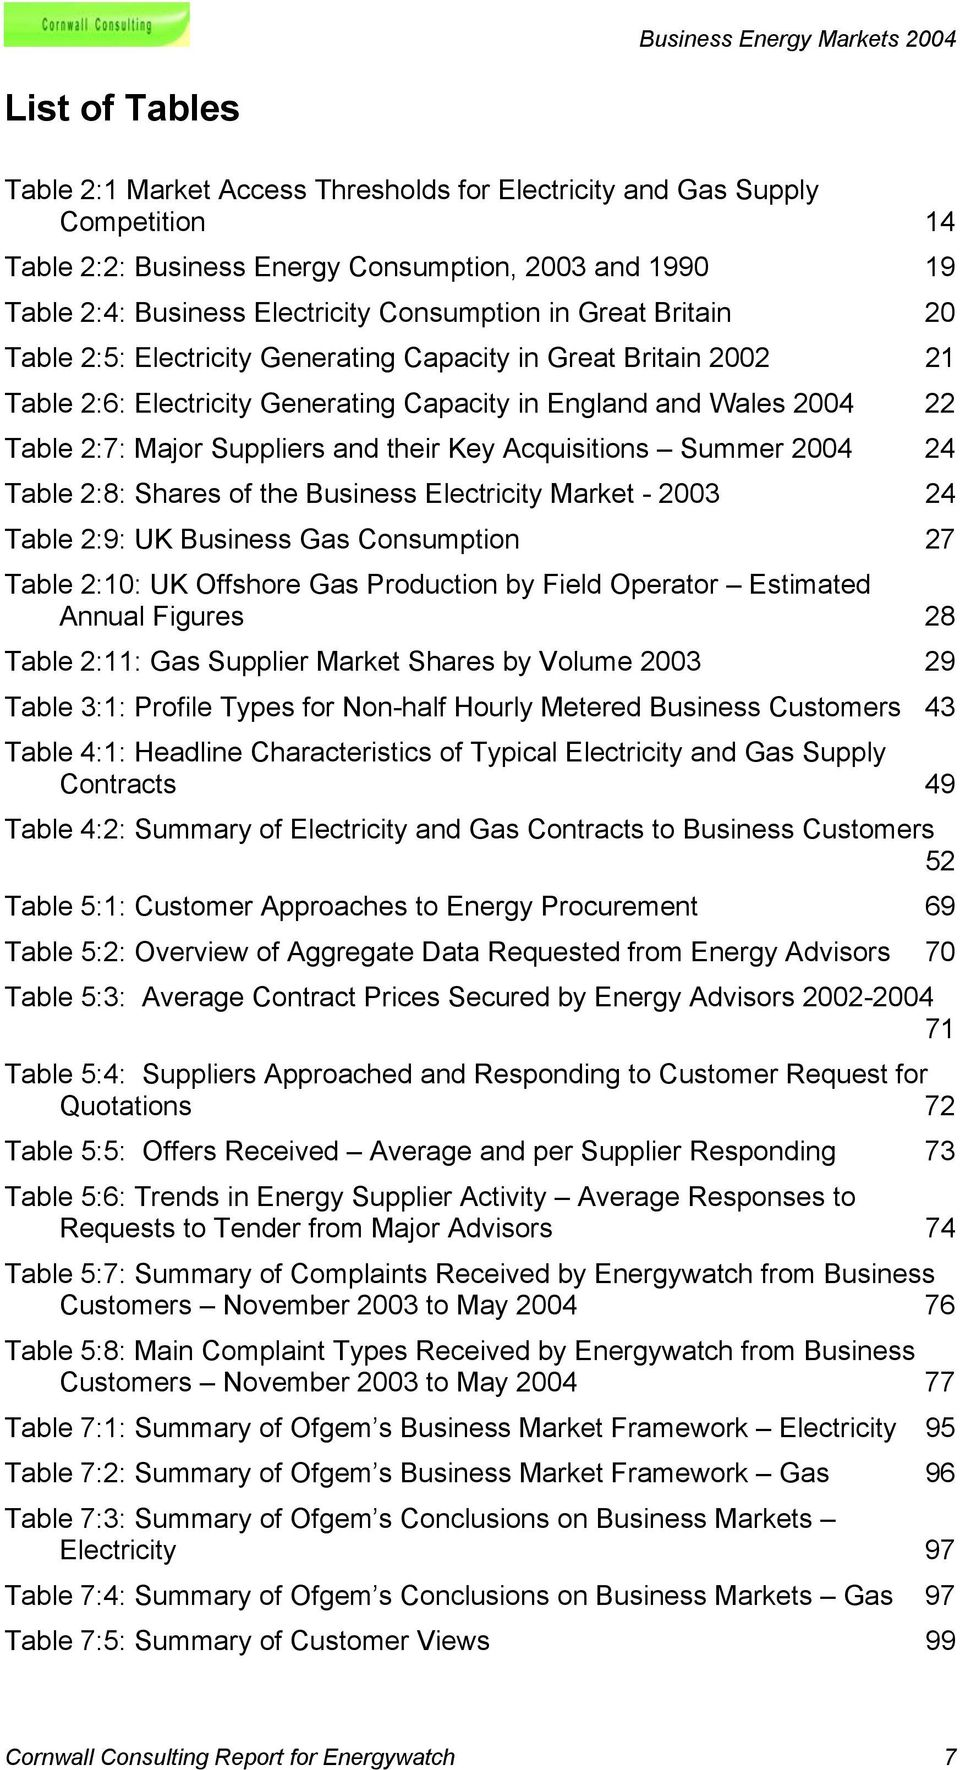 Acquisitions Summer 2004 24 Table 2:8: Shares of the Business Electricity Market - 2003 24 Table 2:9: UK Business Gas Consumption 27 Table 2:10: UK Offshore Gas Production by Field Operator Estimated